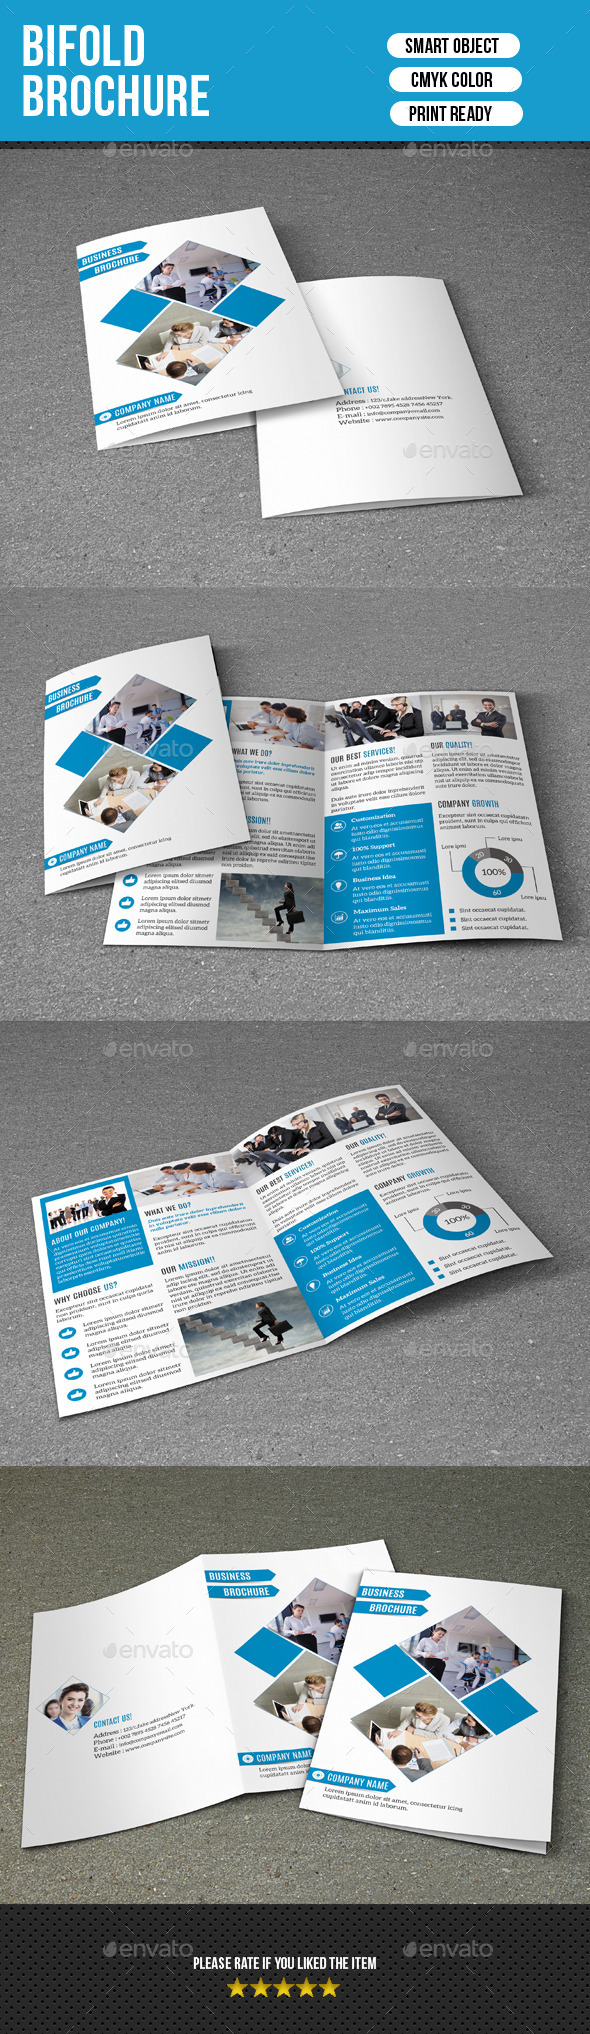 GraphicRiver Bifold Business Brochure-V164 9609428